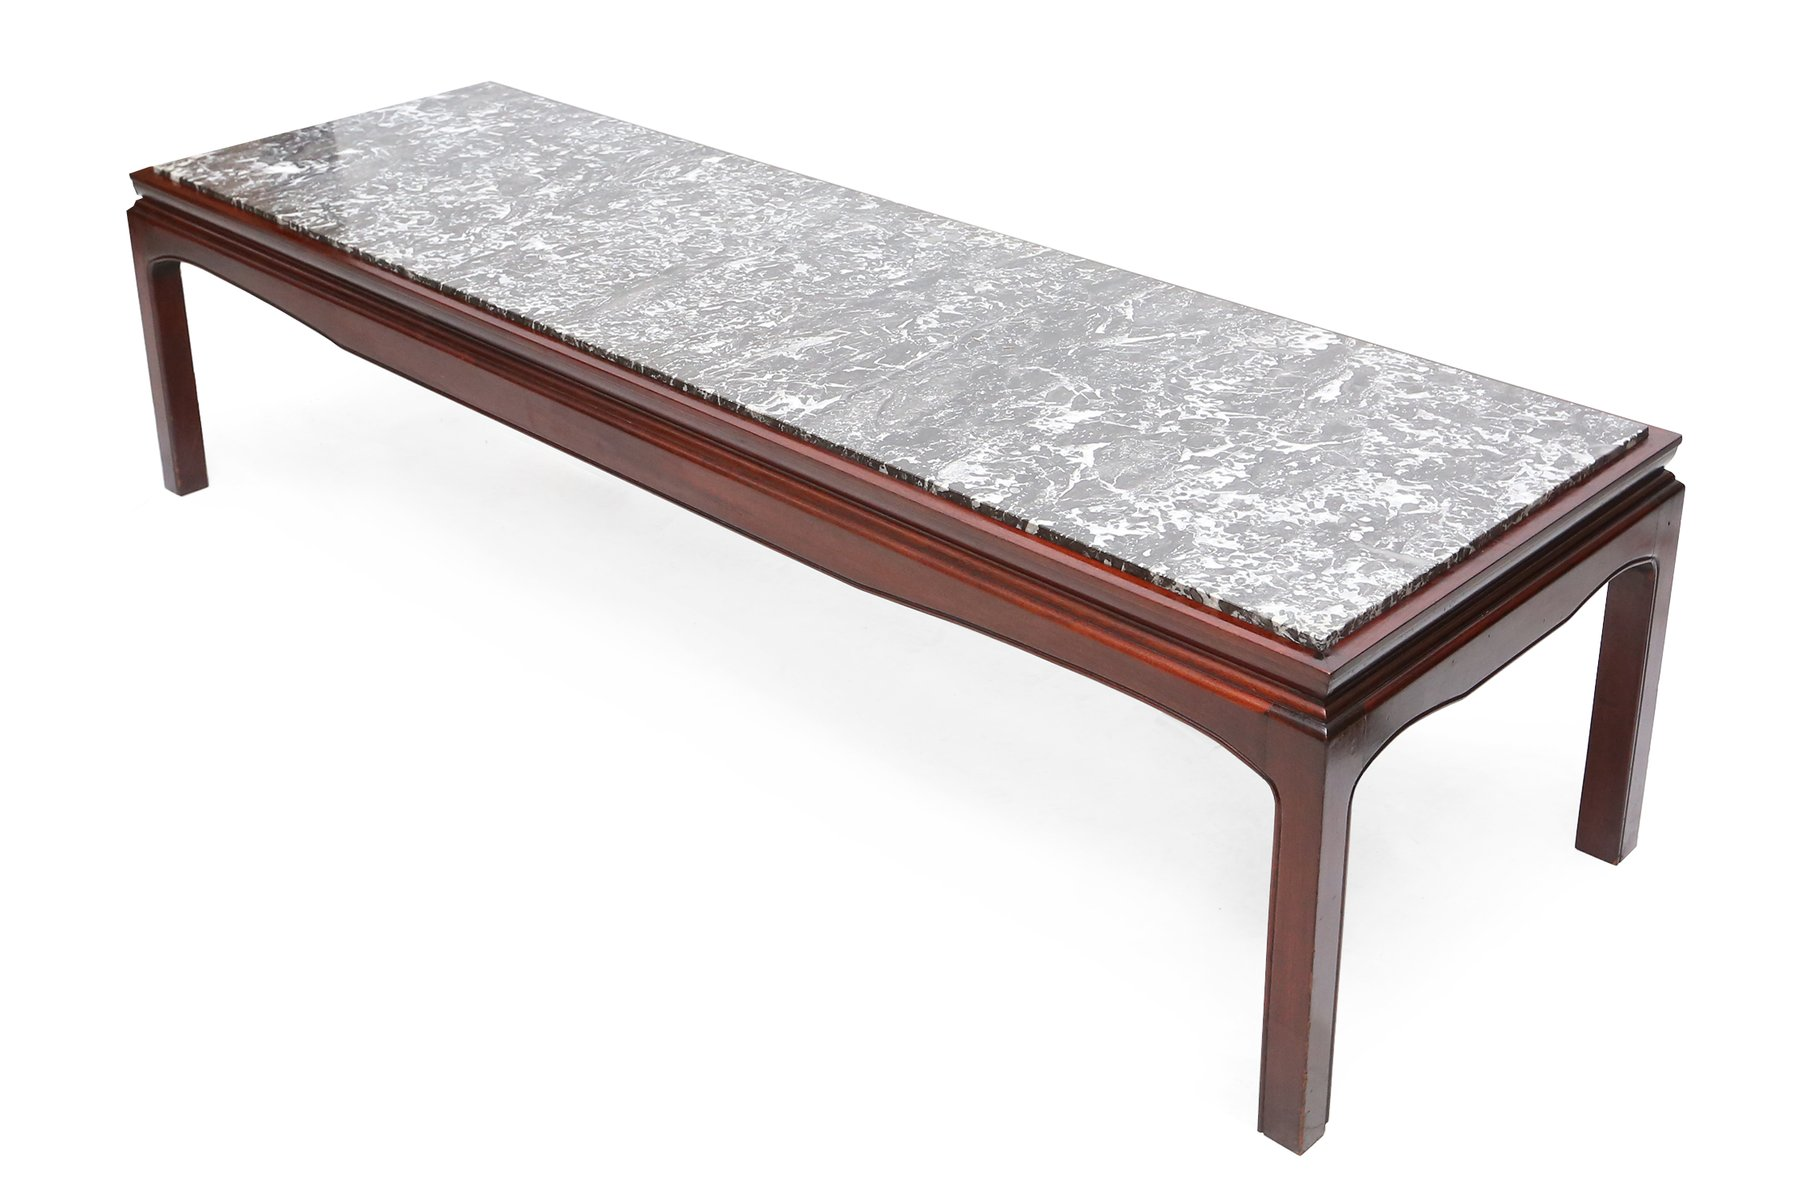 Belgian Japanoiserie Coffee Table By De Coene 1950s For Sale At Pamono